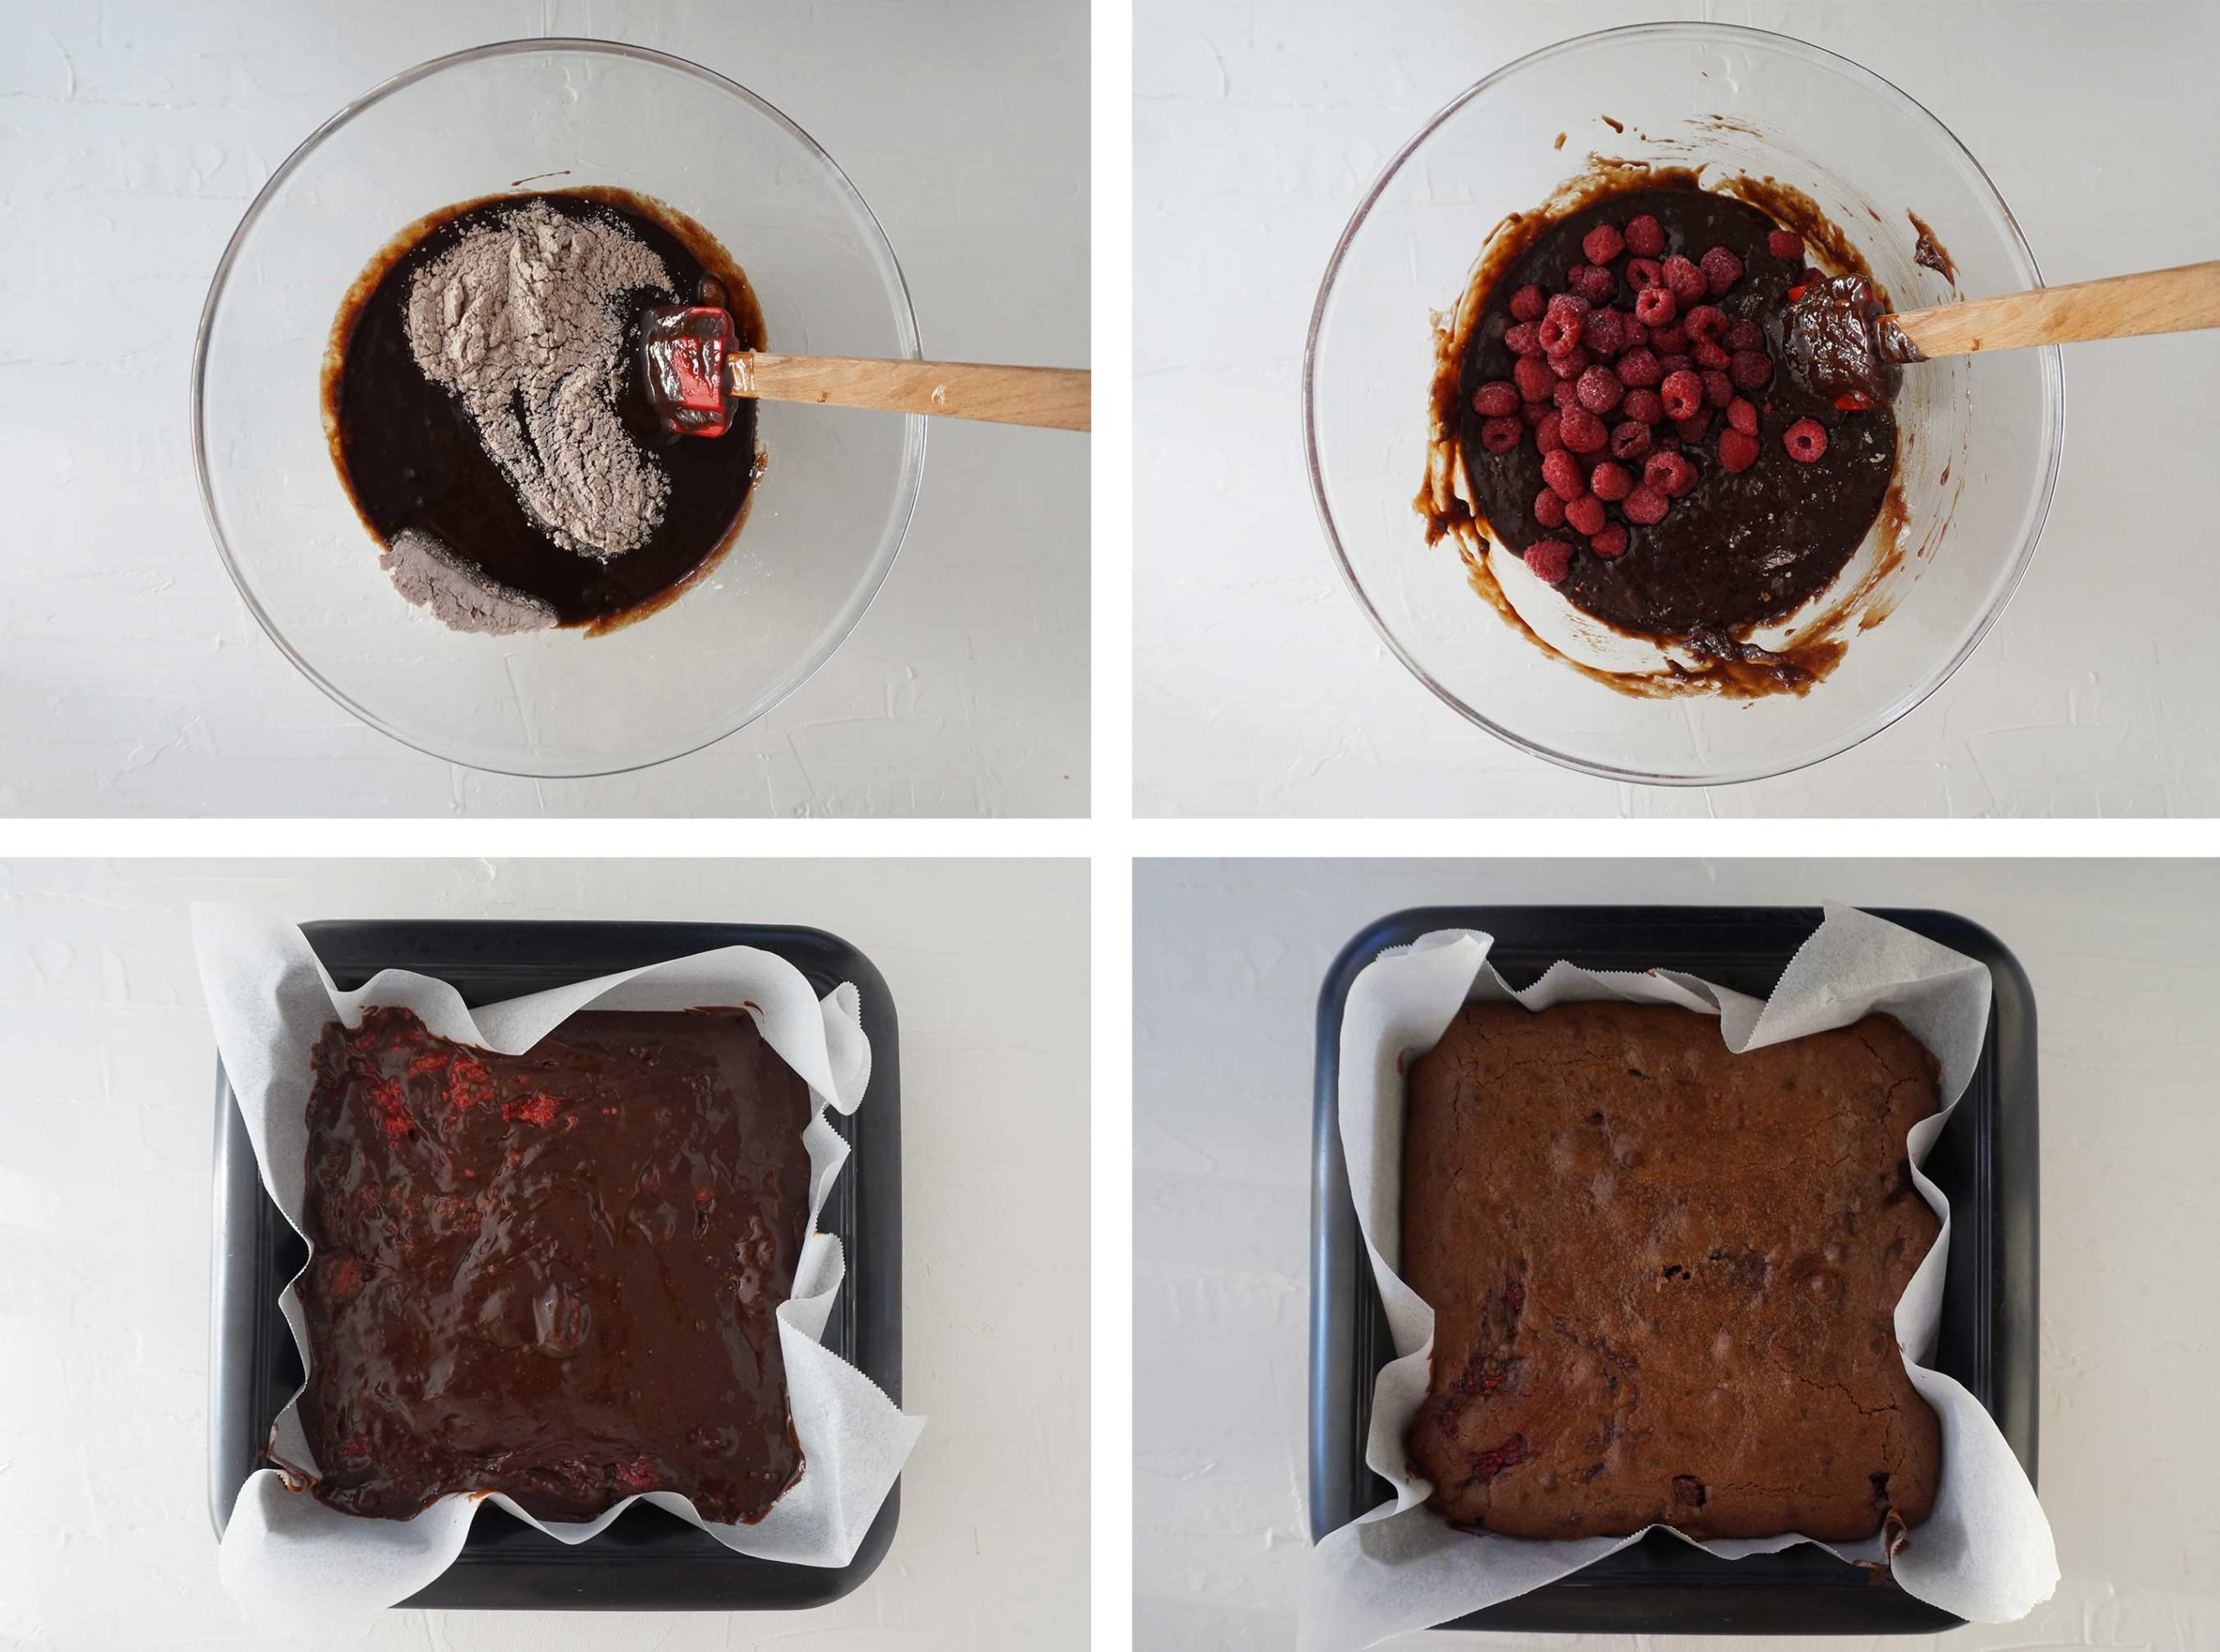 process photos showing the last four steps to make the recipe